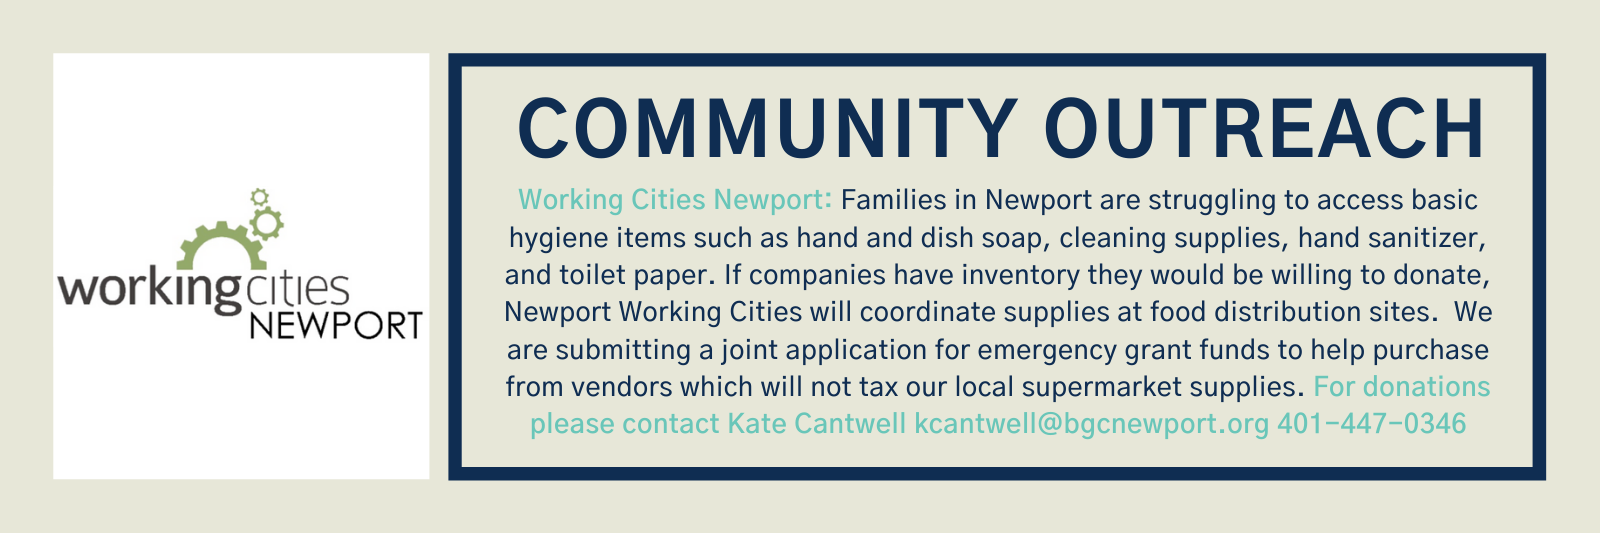 Community-Outreach---Working-Cities.png